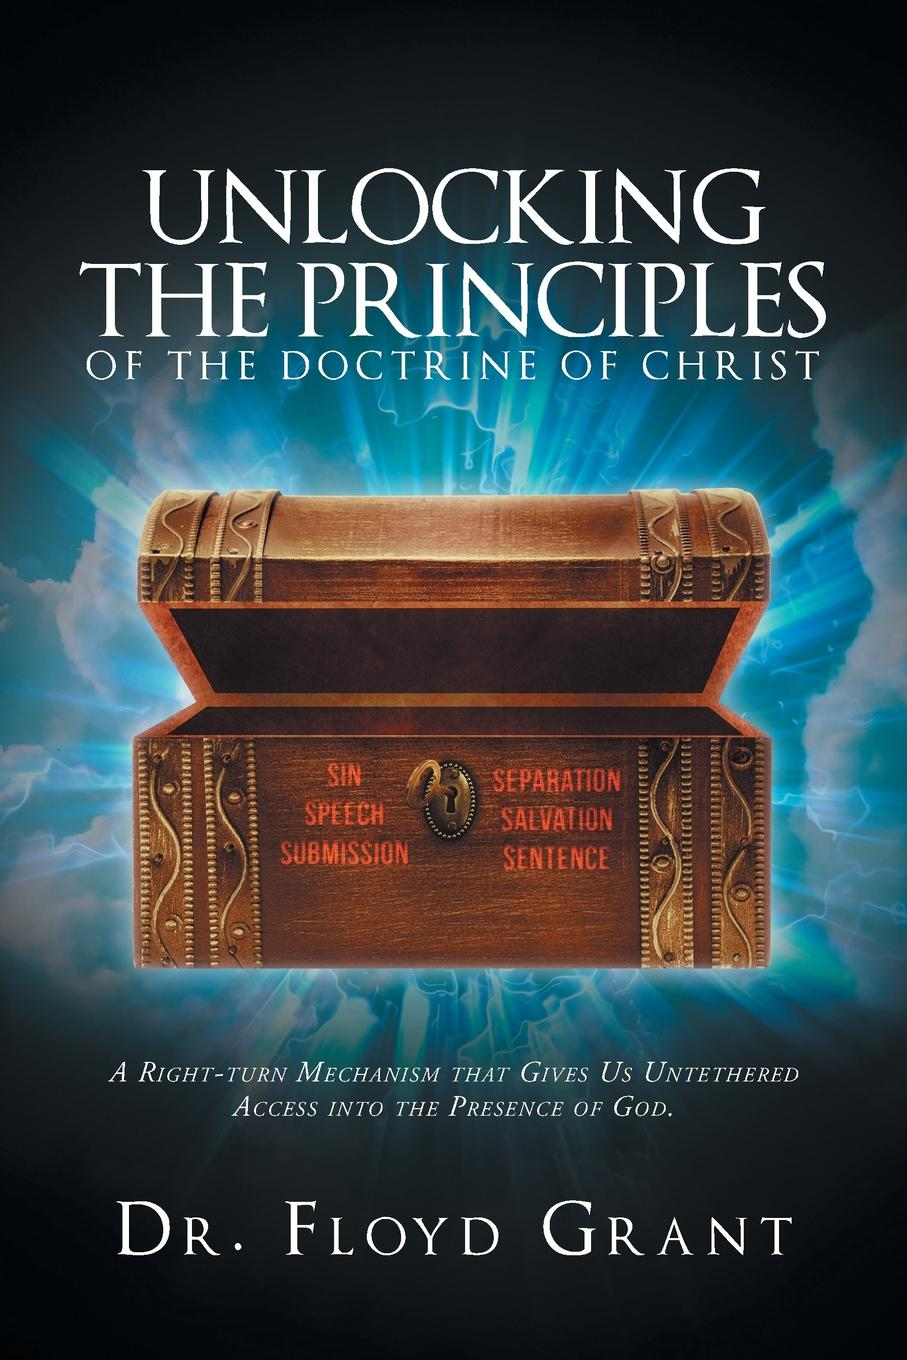 Dr. Floyd Grant Unlocking The Principles Of The Doctrine Of Christ. A Right-Turn Mechanism that Gives Us Untethered Access into the Presence of God harry herman six principles of the doctrine of christ foundation for pentecostal apostolic faith